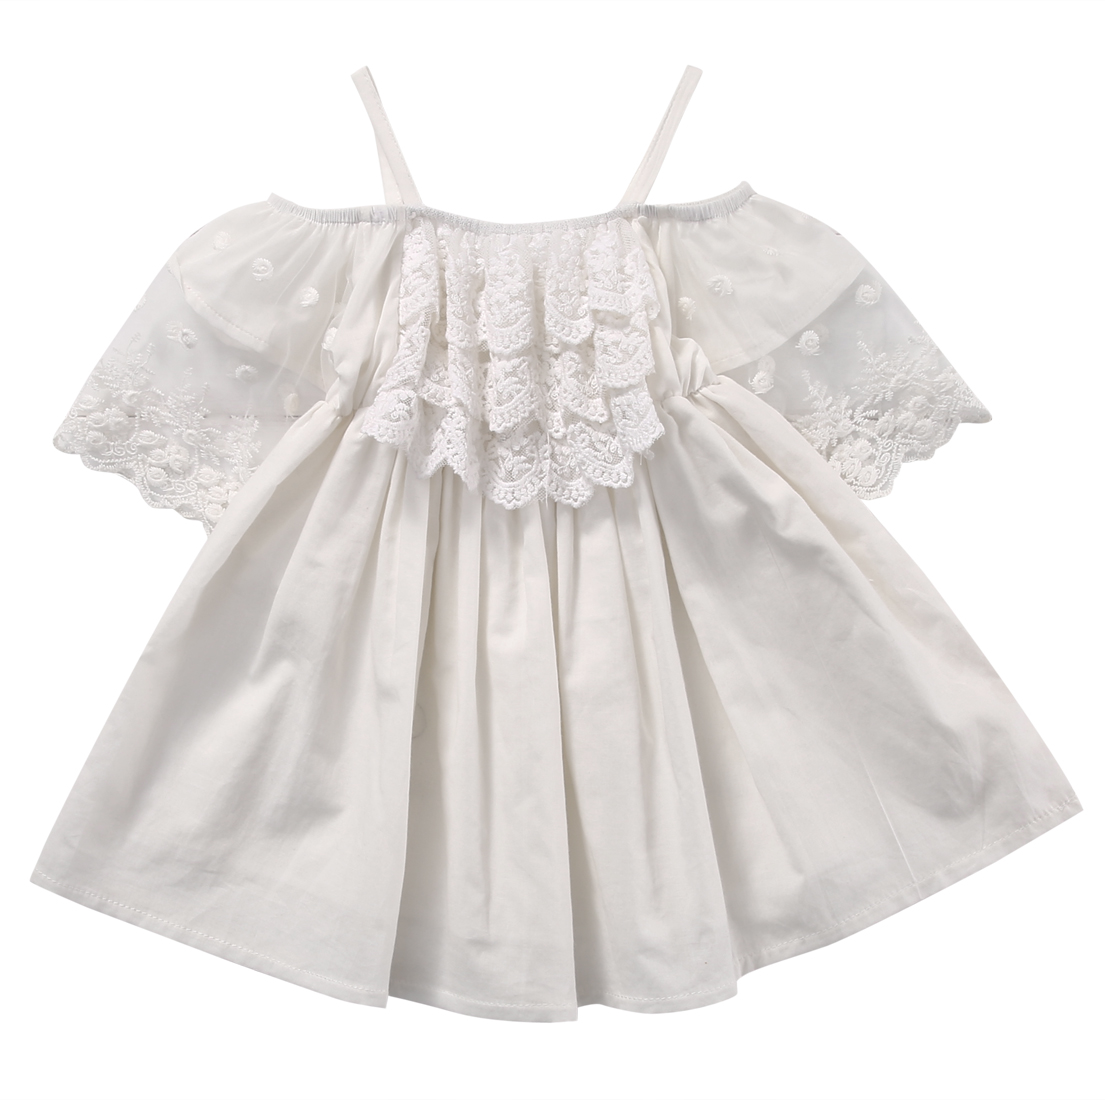 2017 Summer Toddler Kids Baby Girls Off shoulder White Lace Dress Princess Girl Party Dresses Children Clothes One Pieces 2-7Y summer sequin baby girl dress kids toddler girl clothes baptism princess tutu children s girls dresses vestidos infantis 2 9y